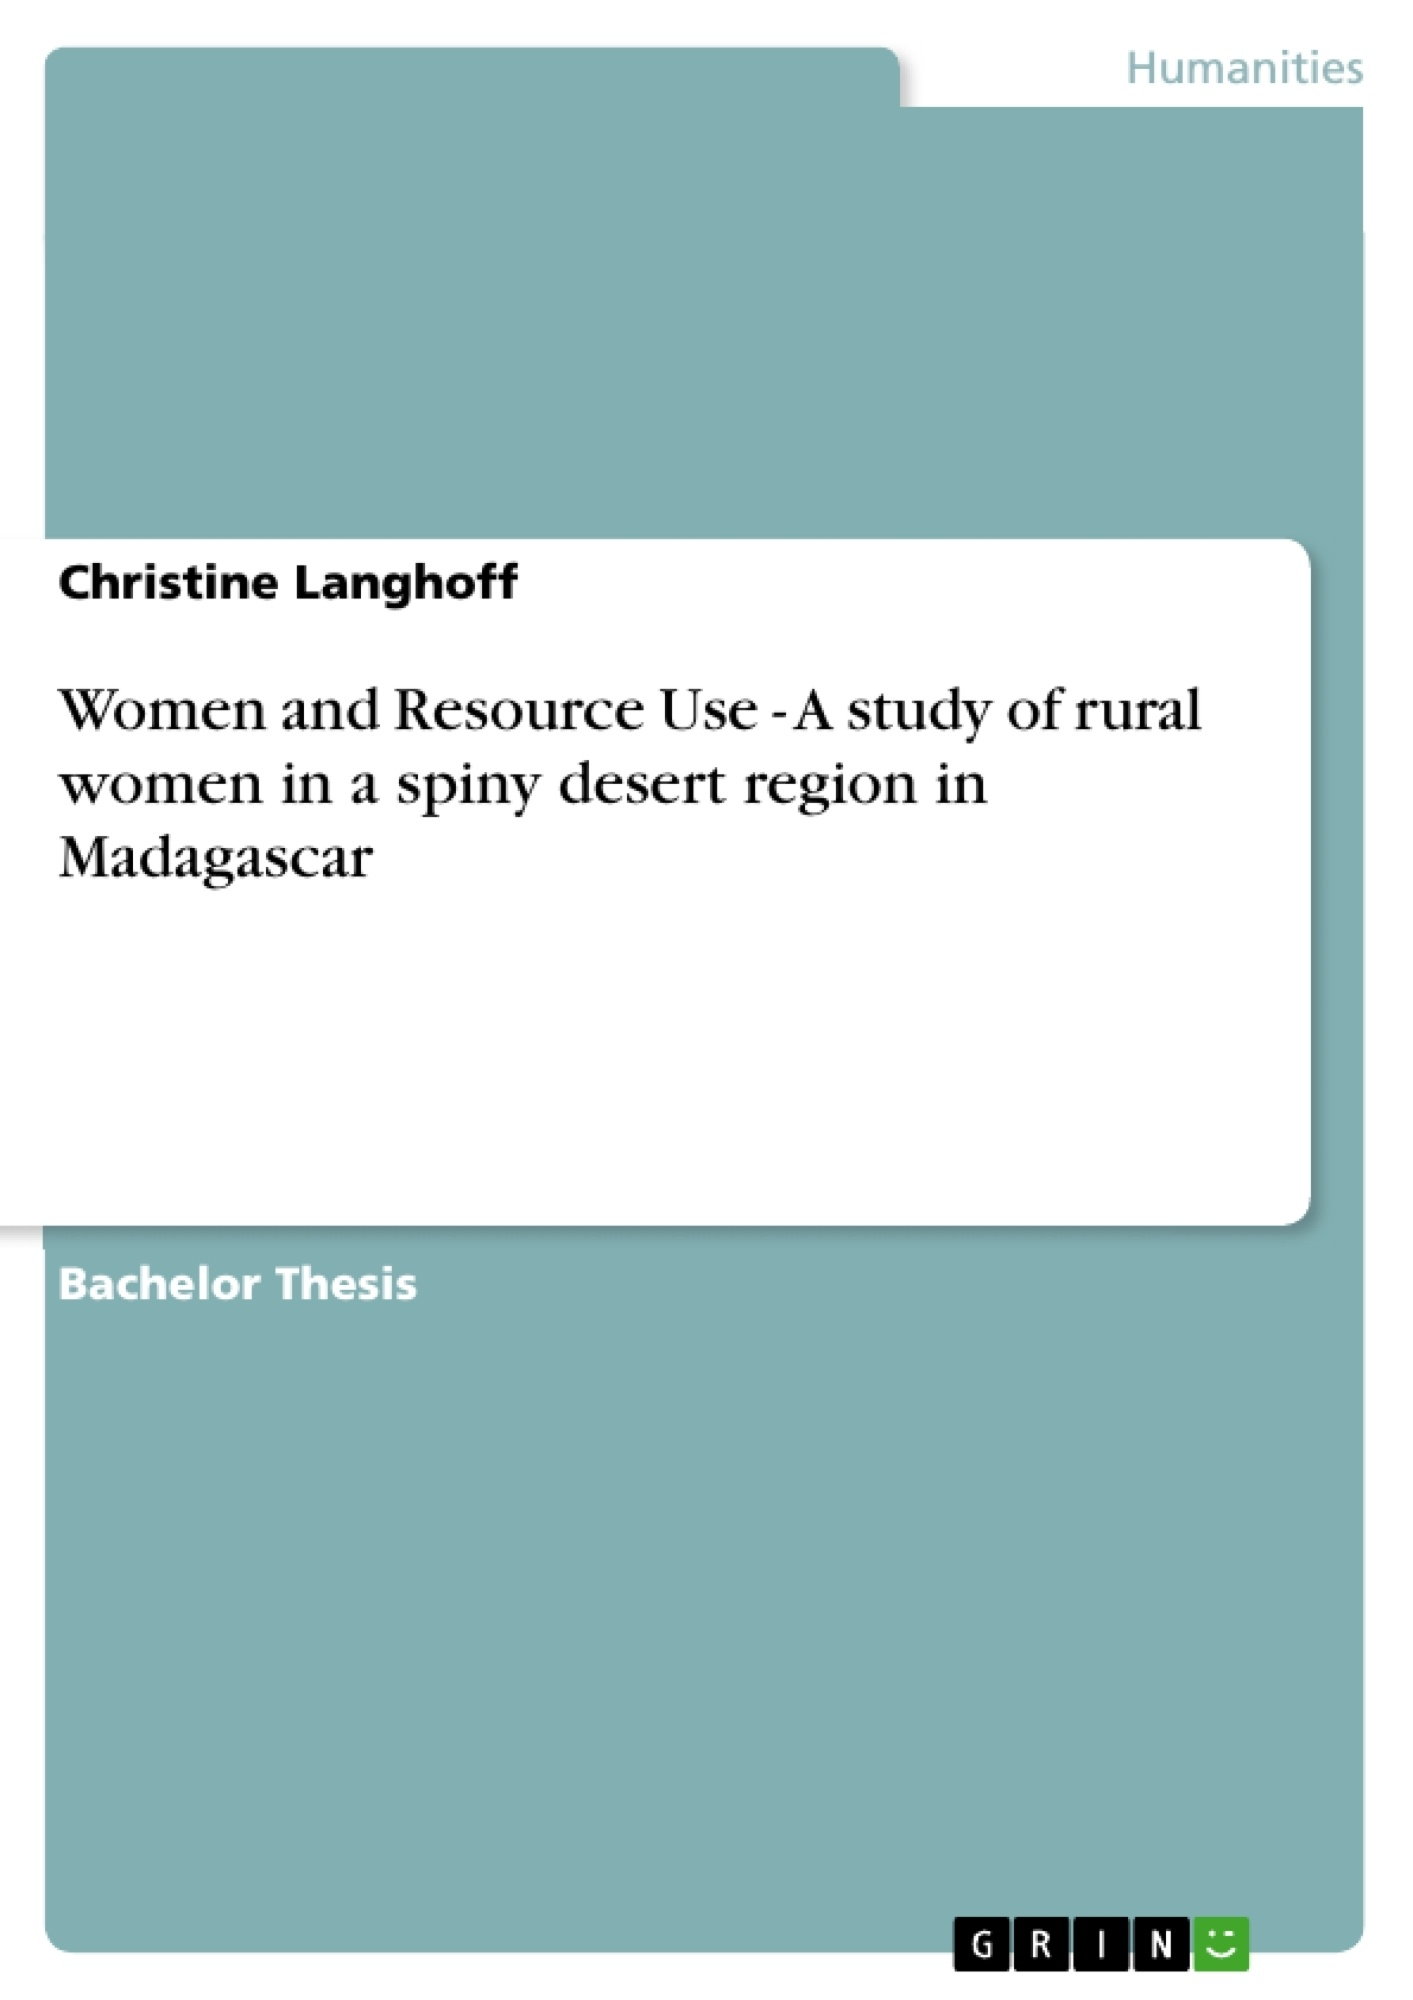 Title: Women and Resource Use - A study of rural women in a spiny desert region in Madagascar